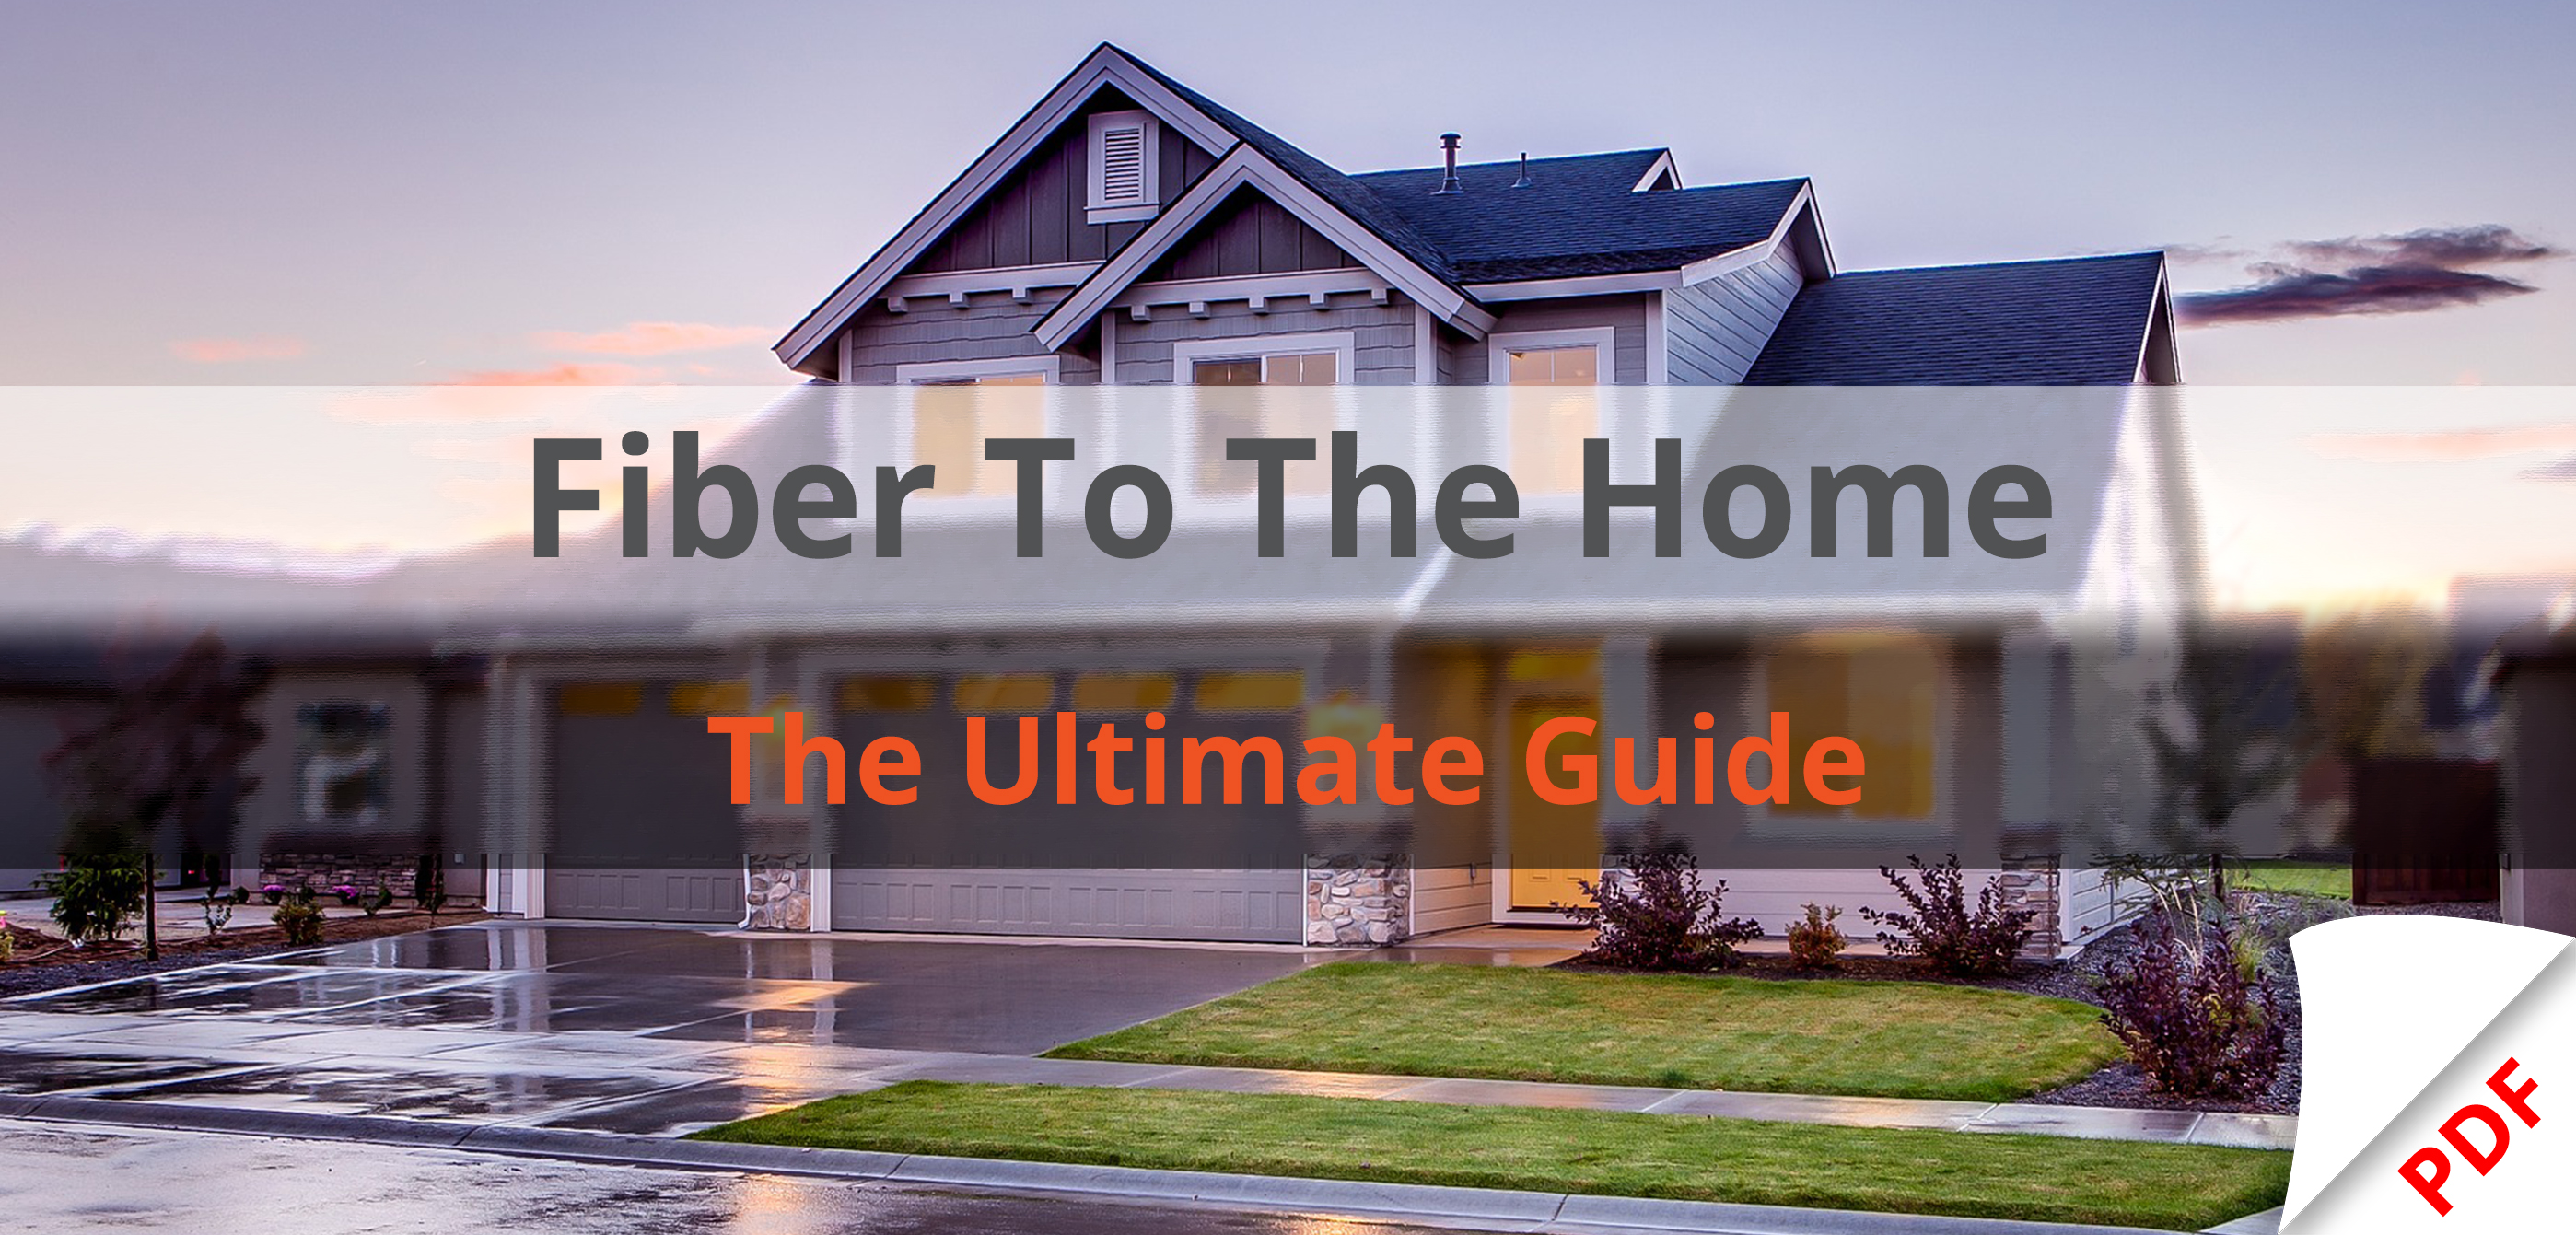 Download - Fiber To The Home - Landing Page (featured image)